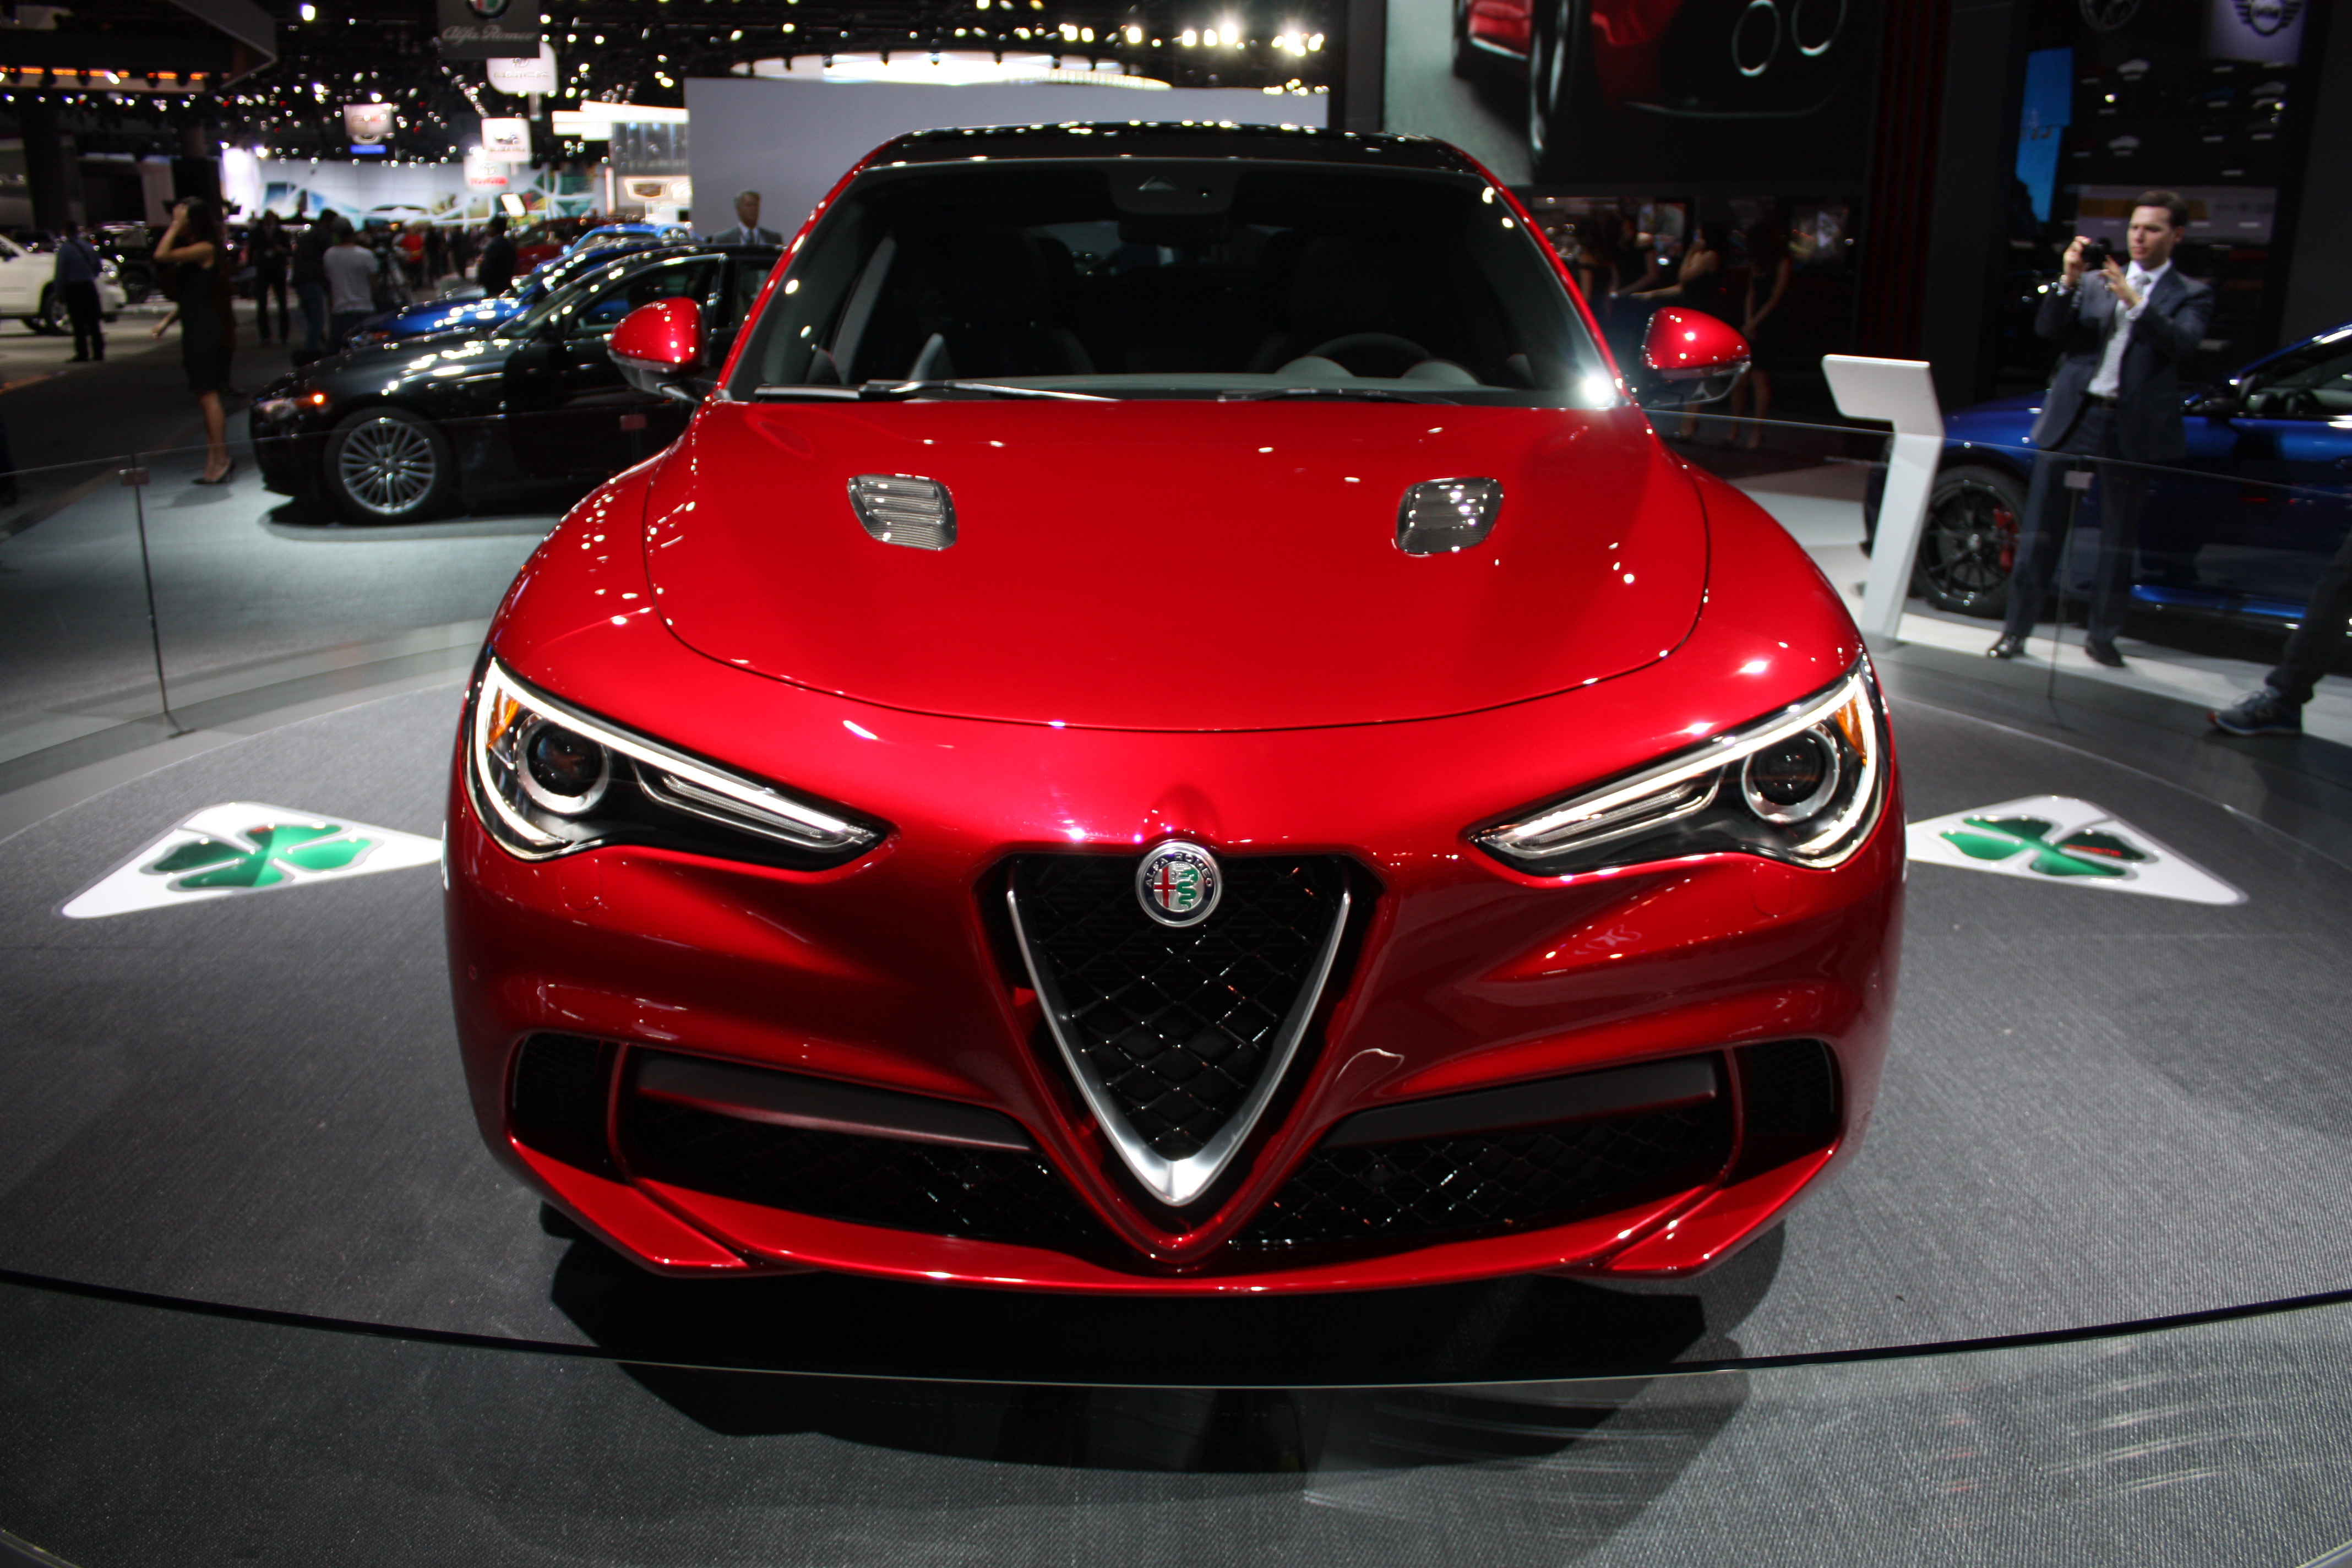 Alfa Romeo 4C Top Speed >> 2018 Alfa Romeo Stelvio Quadrifoglio Review - Top Speed